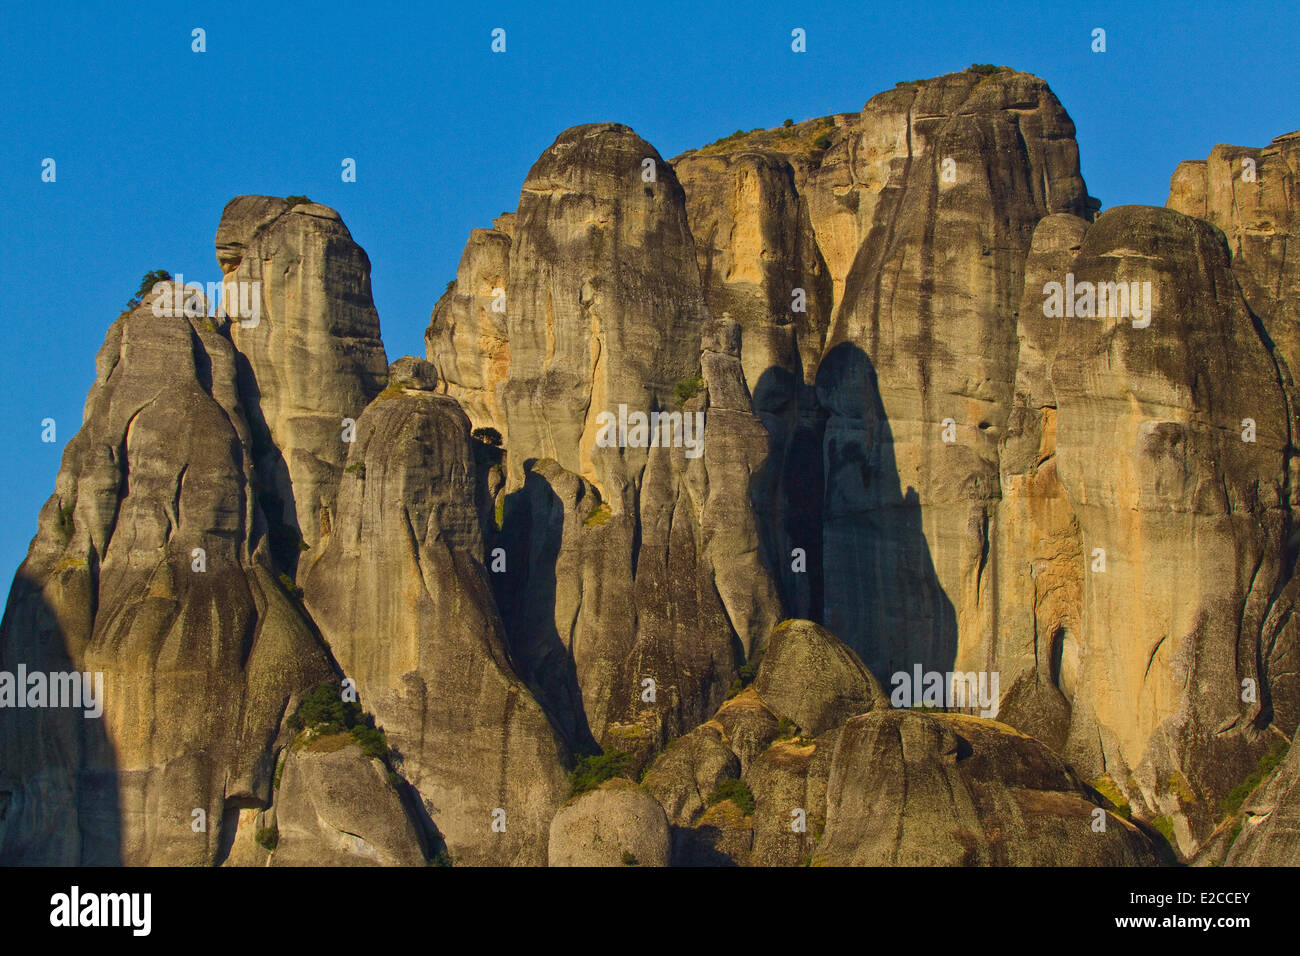 Greece, Thessaly, Meteora monasteries complex, listed as World Heritage by UNESCO, Meteora - Stock Image